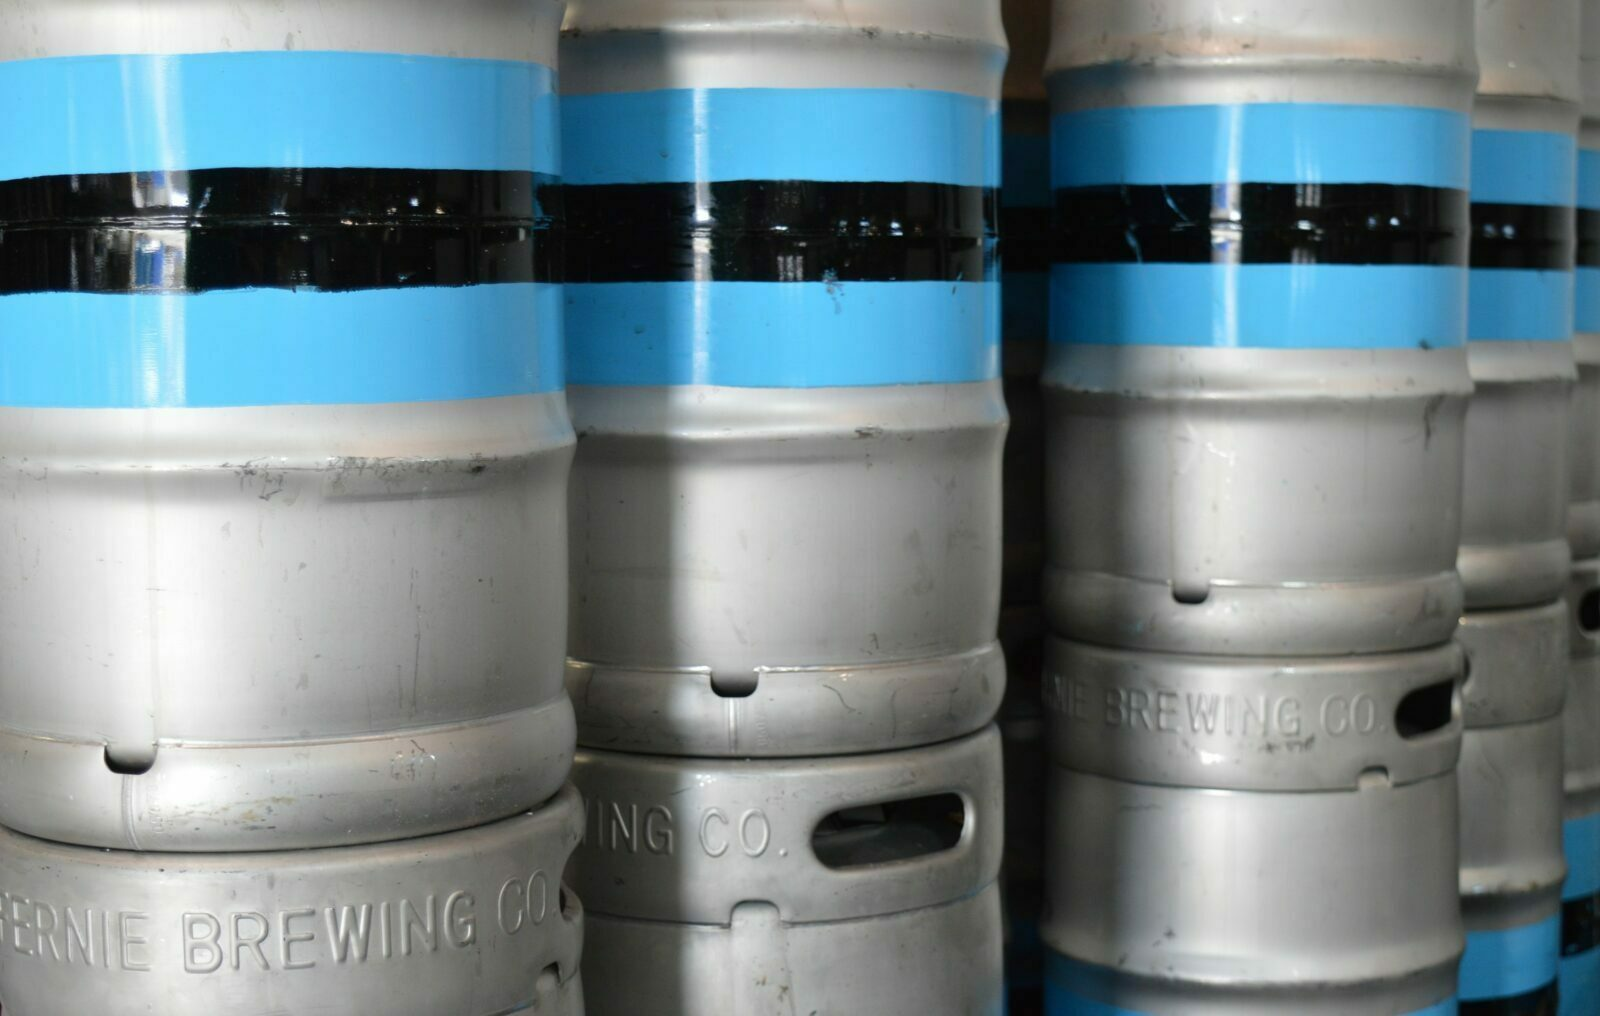 Stack of Fernie Brewing Co. kegs.